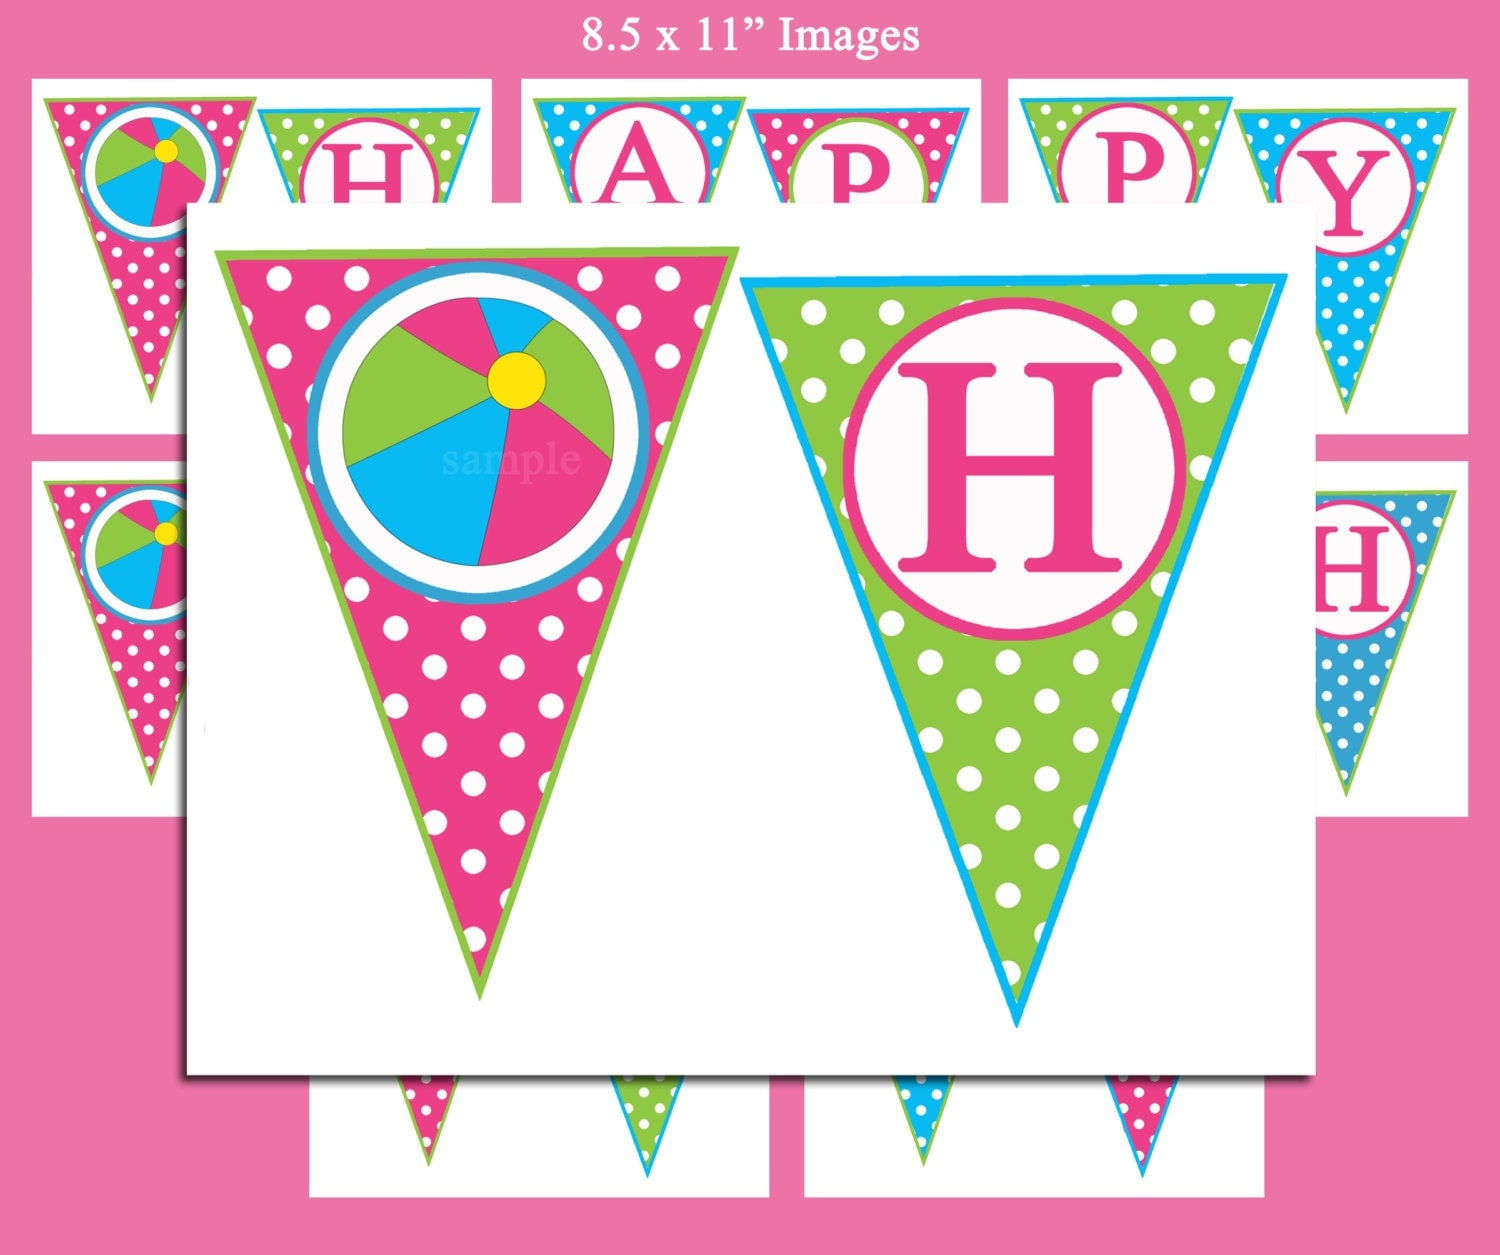 It's just an image of Sassy Printable Happy Birthday Banner